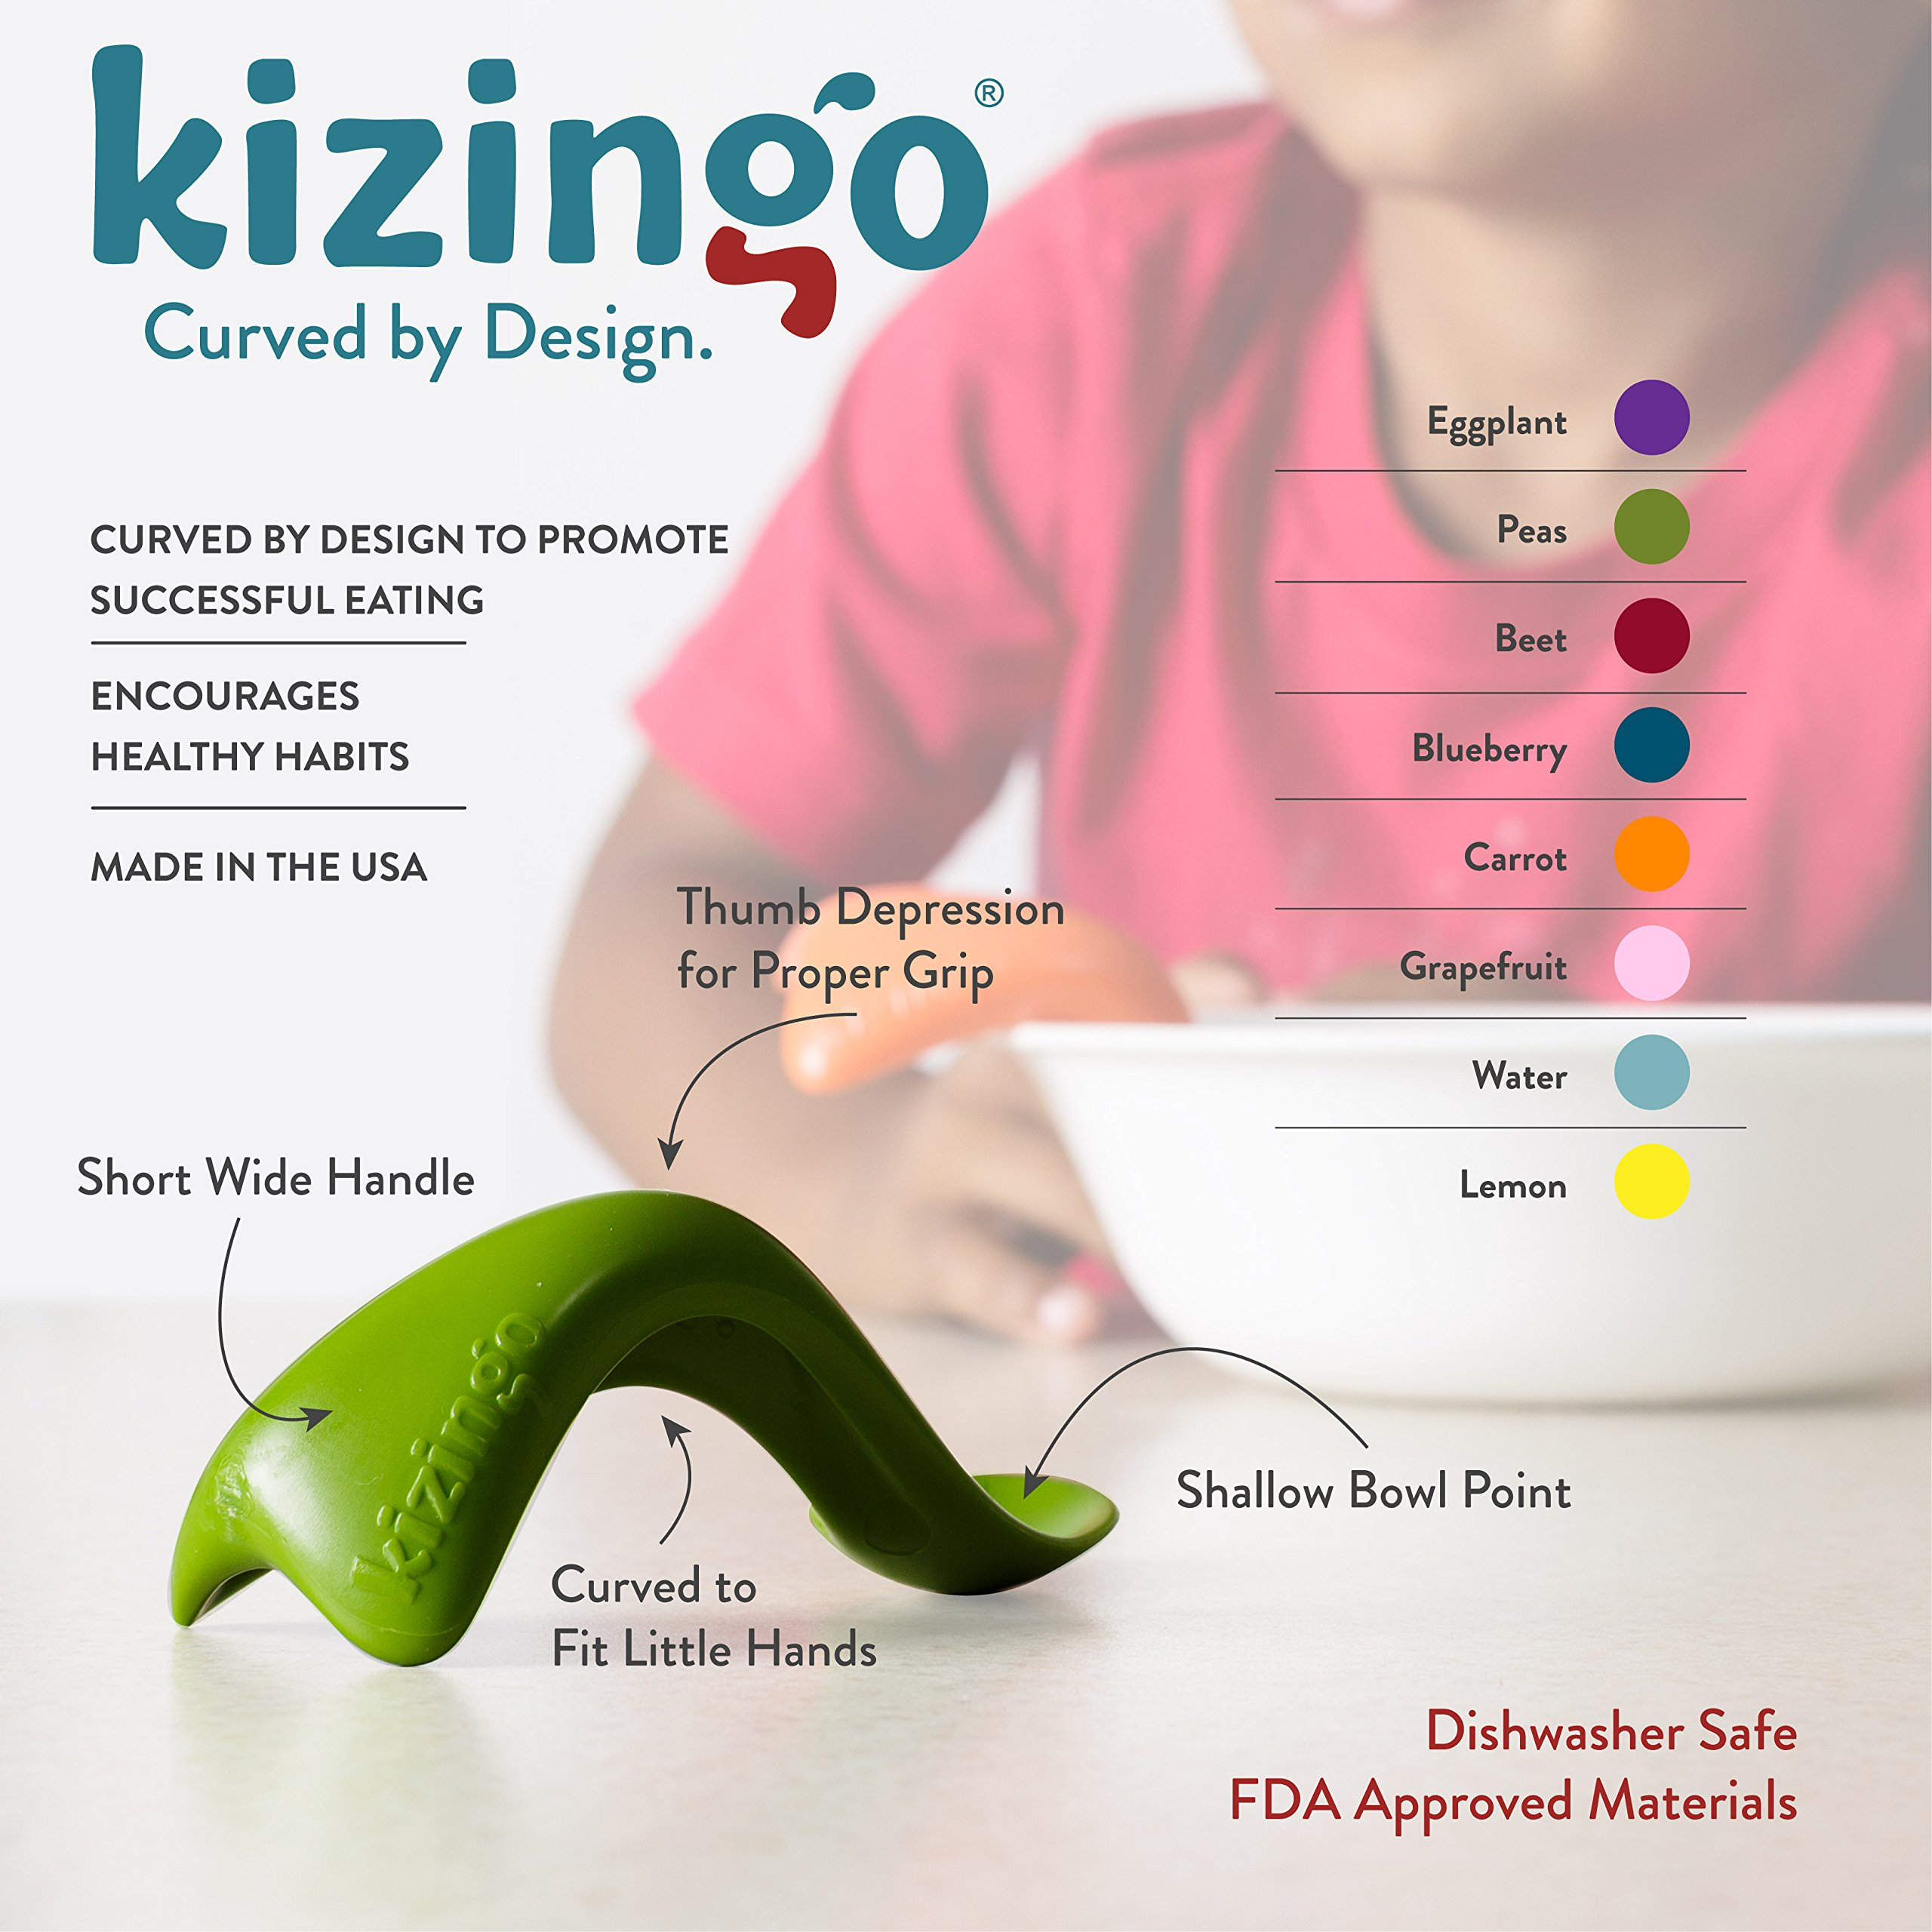 Kizingo Toddler Spoon - Curved Self-Feeding Learner Spoon for Toddler Development (Right Hand, Green and Orange) by Kizingo (Image #3)